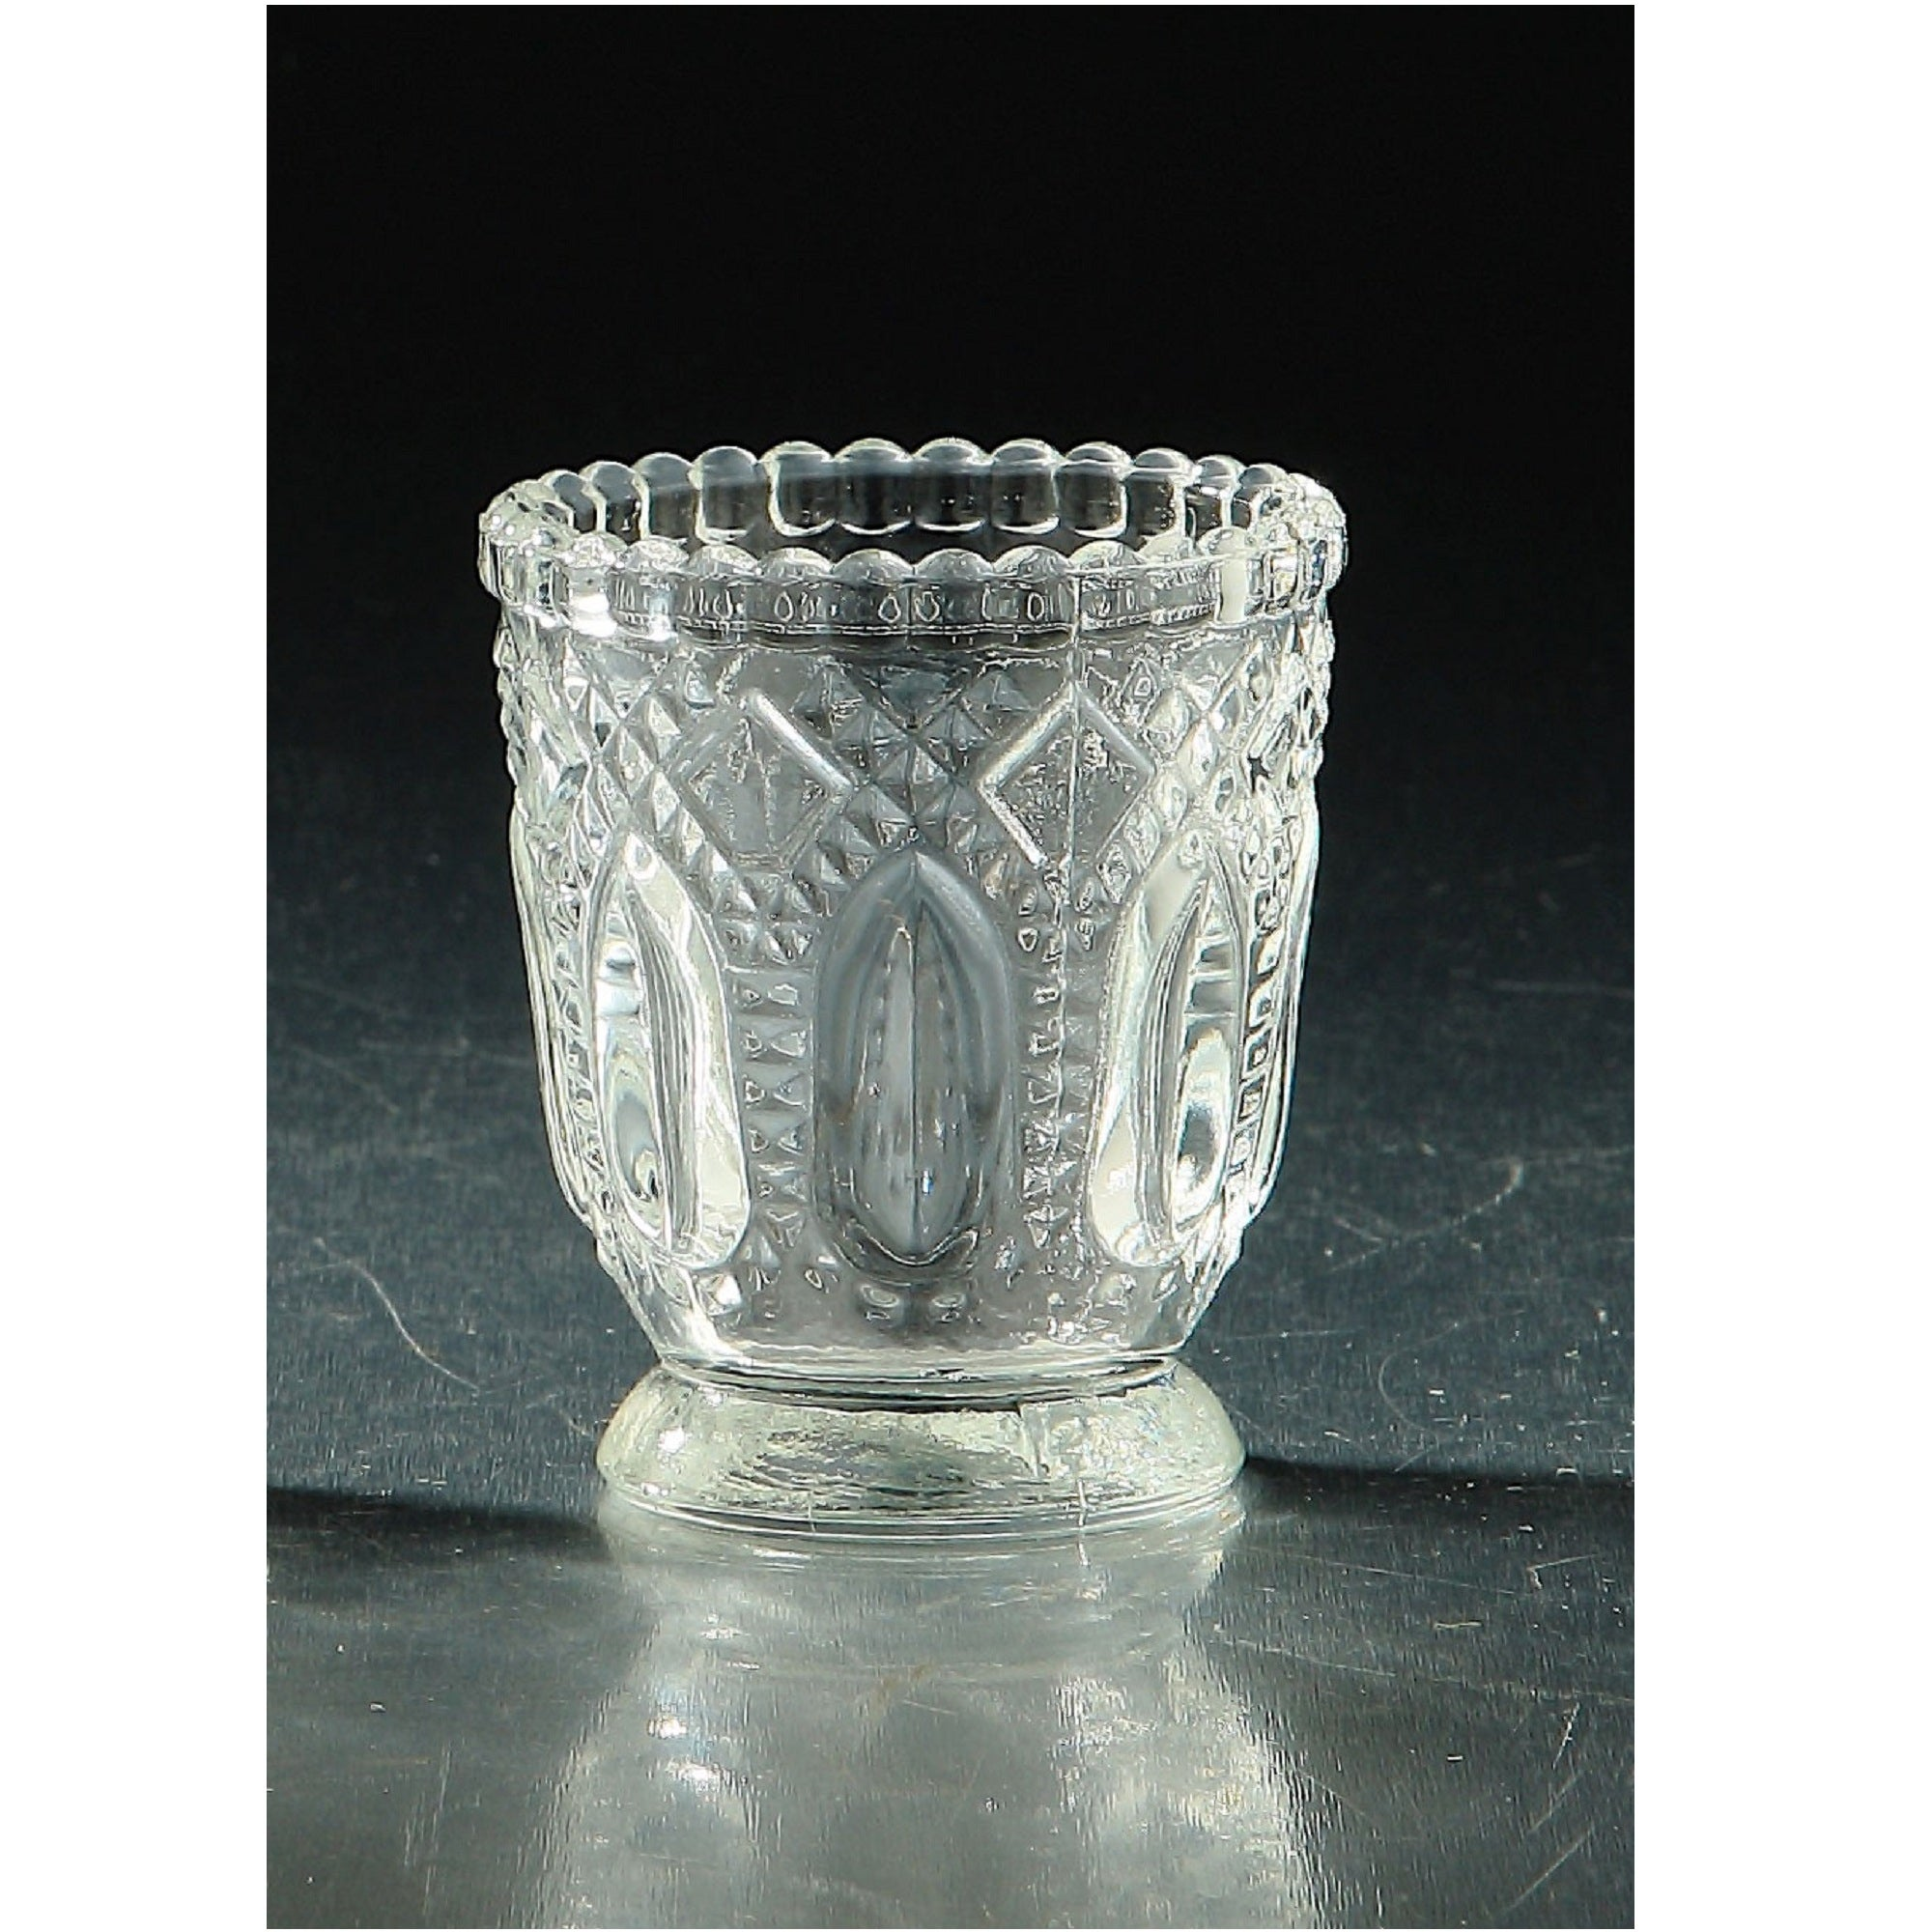 3 Clear Vintage Hand Blown Glass Votive Or Tea Light Candle Holder Overstock 28706379